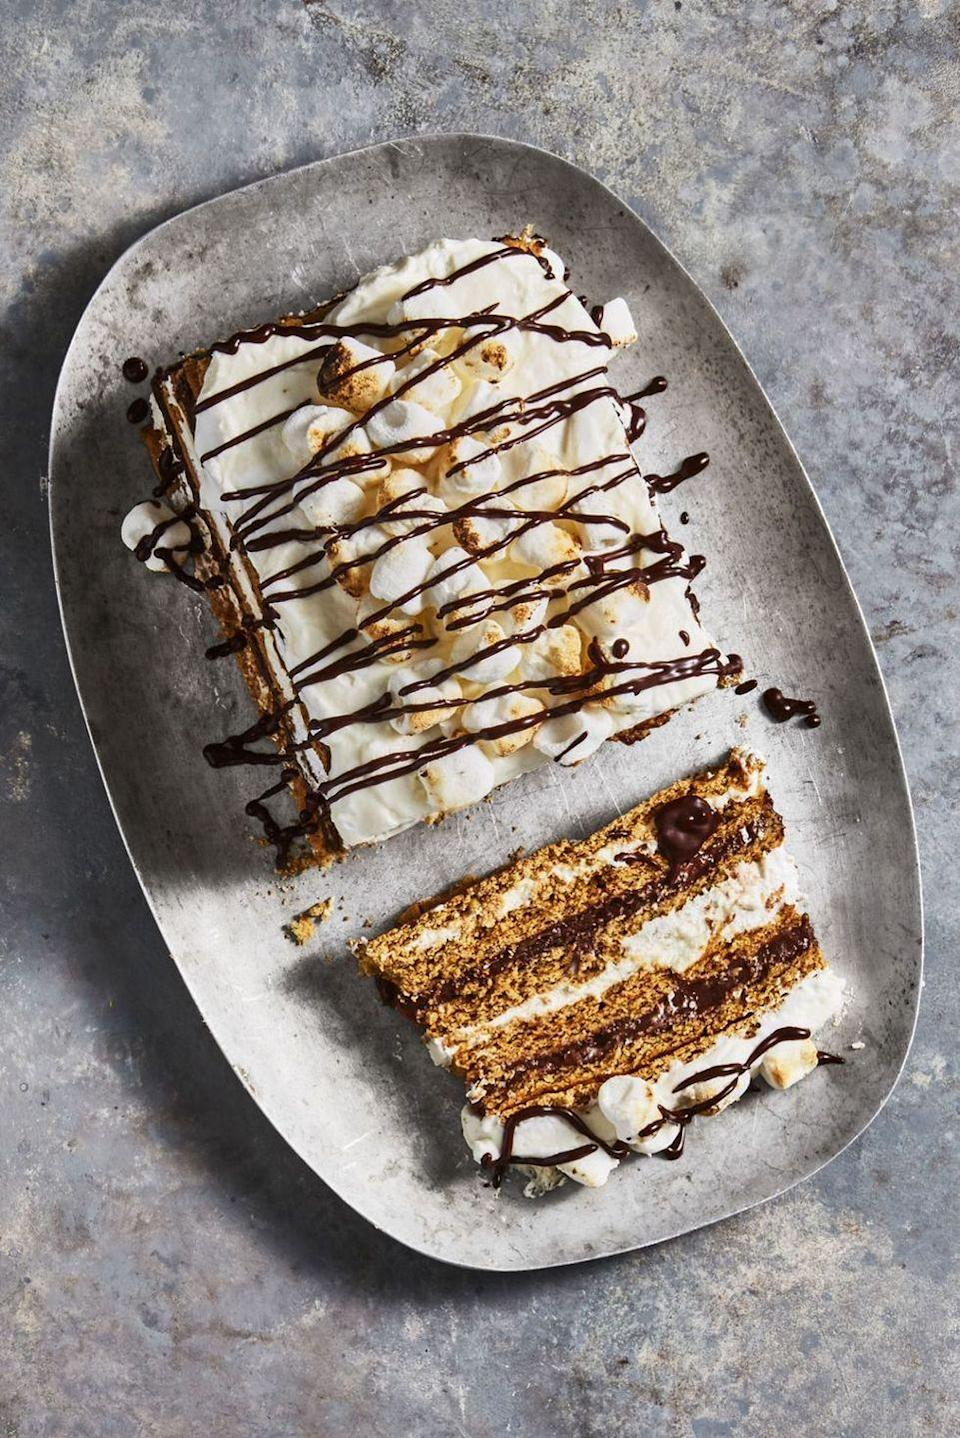 "<p>This no-bake cake stacked with layers of grahams, chocolate, and marshmallow comes together in a loaf pan and gets refrigerated overnight so it's a great make-ahead option too.</p><p><em><a href=""https://www.goodhousekeeping.com/food-recipes/dessert/a45720/smores-icebox-cake-recipe/"" rel=""nofollow noopener"" target=""_blank"" data-ylk=""slk:Get the recipe for S'mores Icebox Cake »"" class=""link rapid-noclick-resp"">Get the recipe for S'mores Icebox Cake »</a></em> </p>"